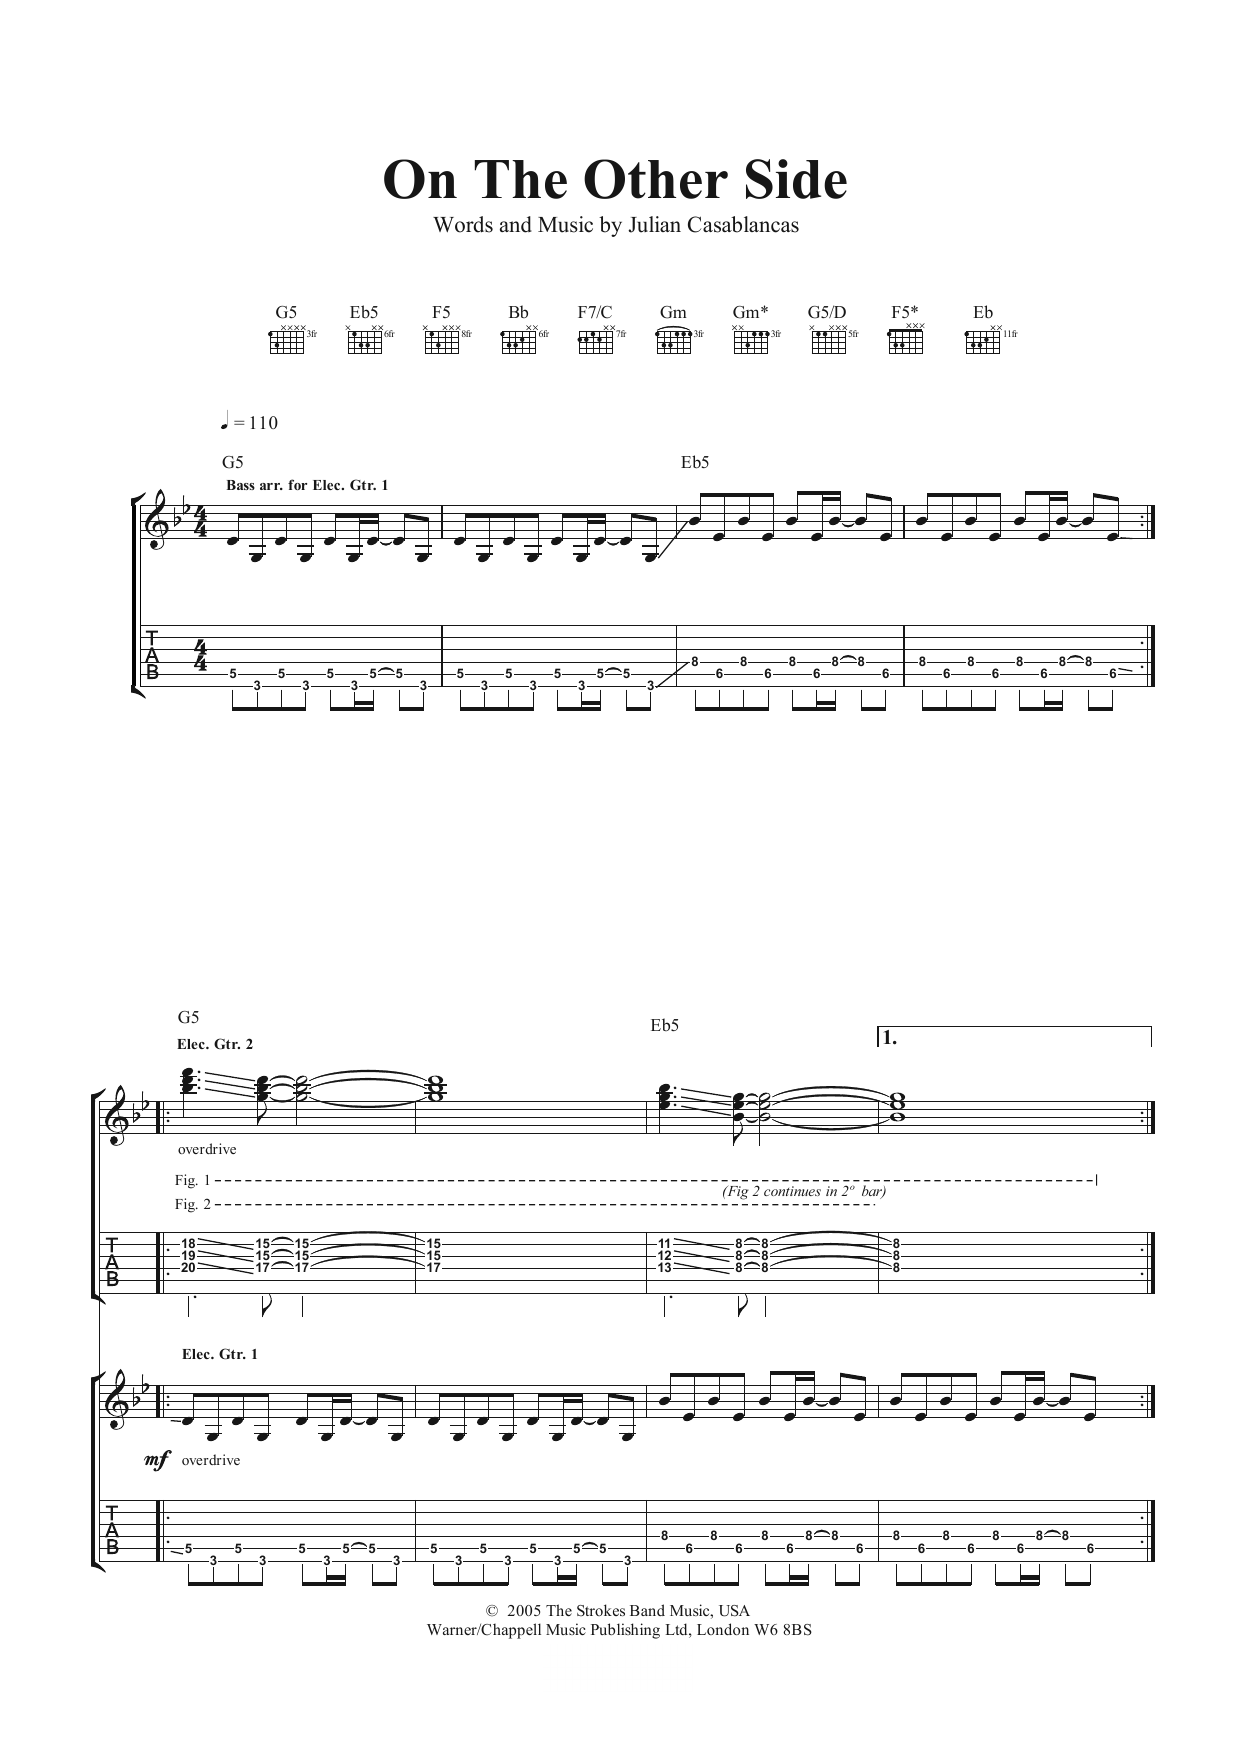 On The Other Side Sheet Music